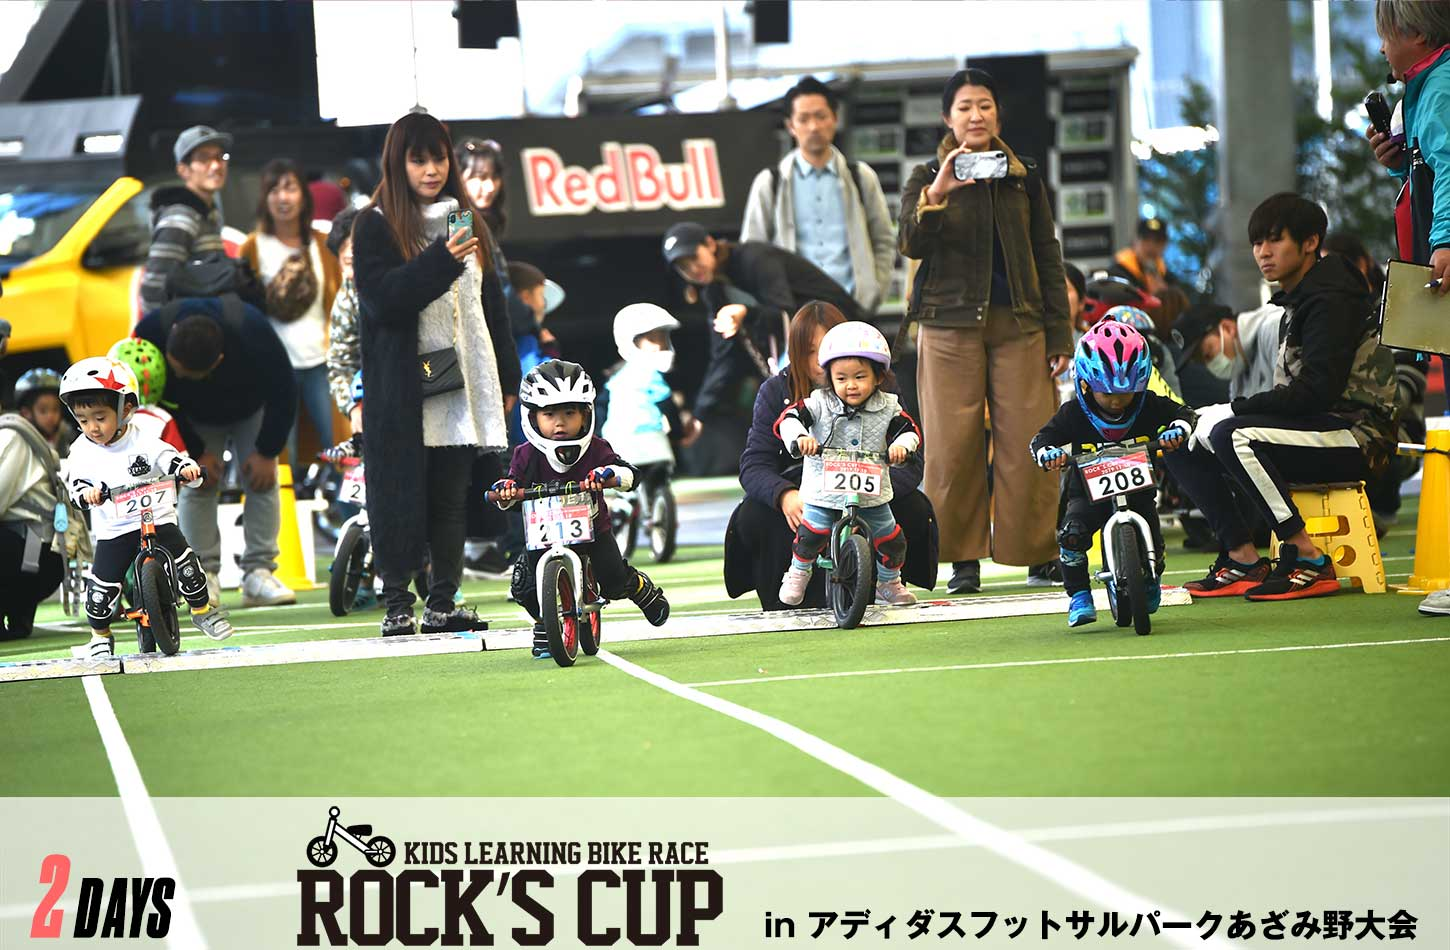 ROCK'S CUP in アディダスフットサルパーク